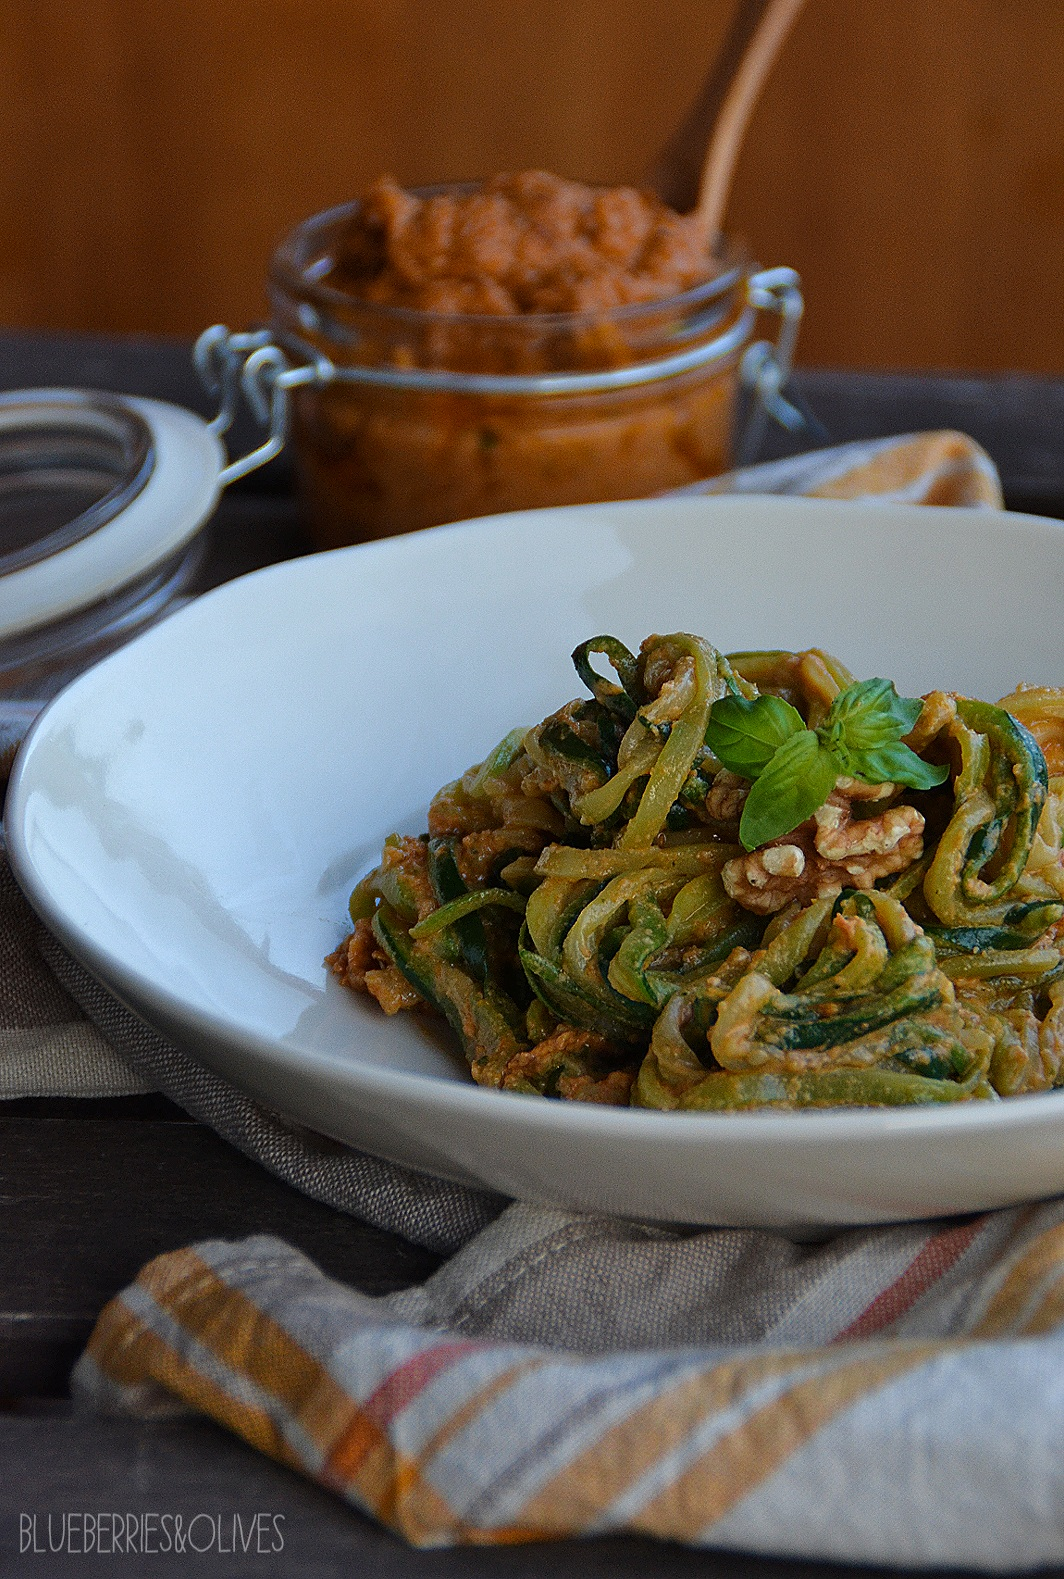 ZUCCHINI NOODLES WITH RED WALNUT PESTO